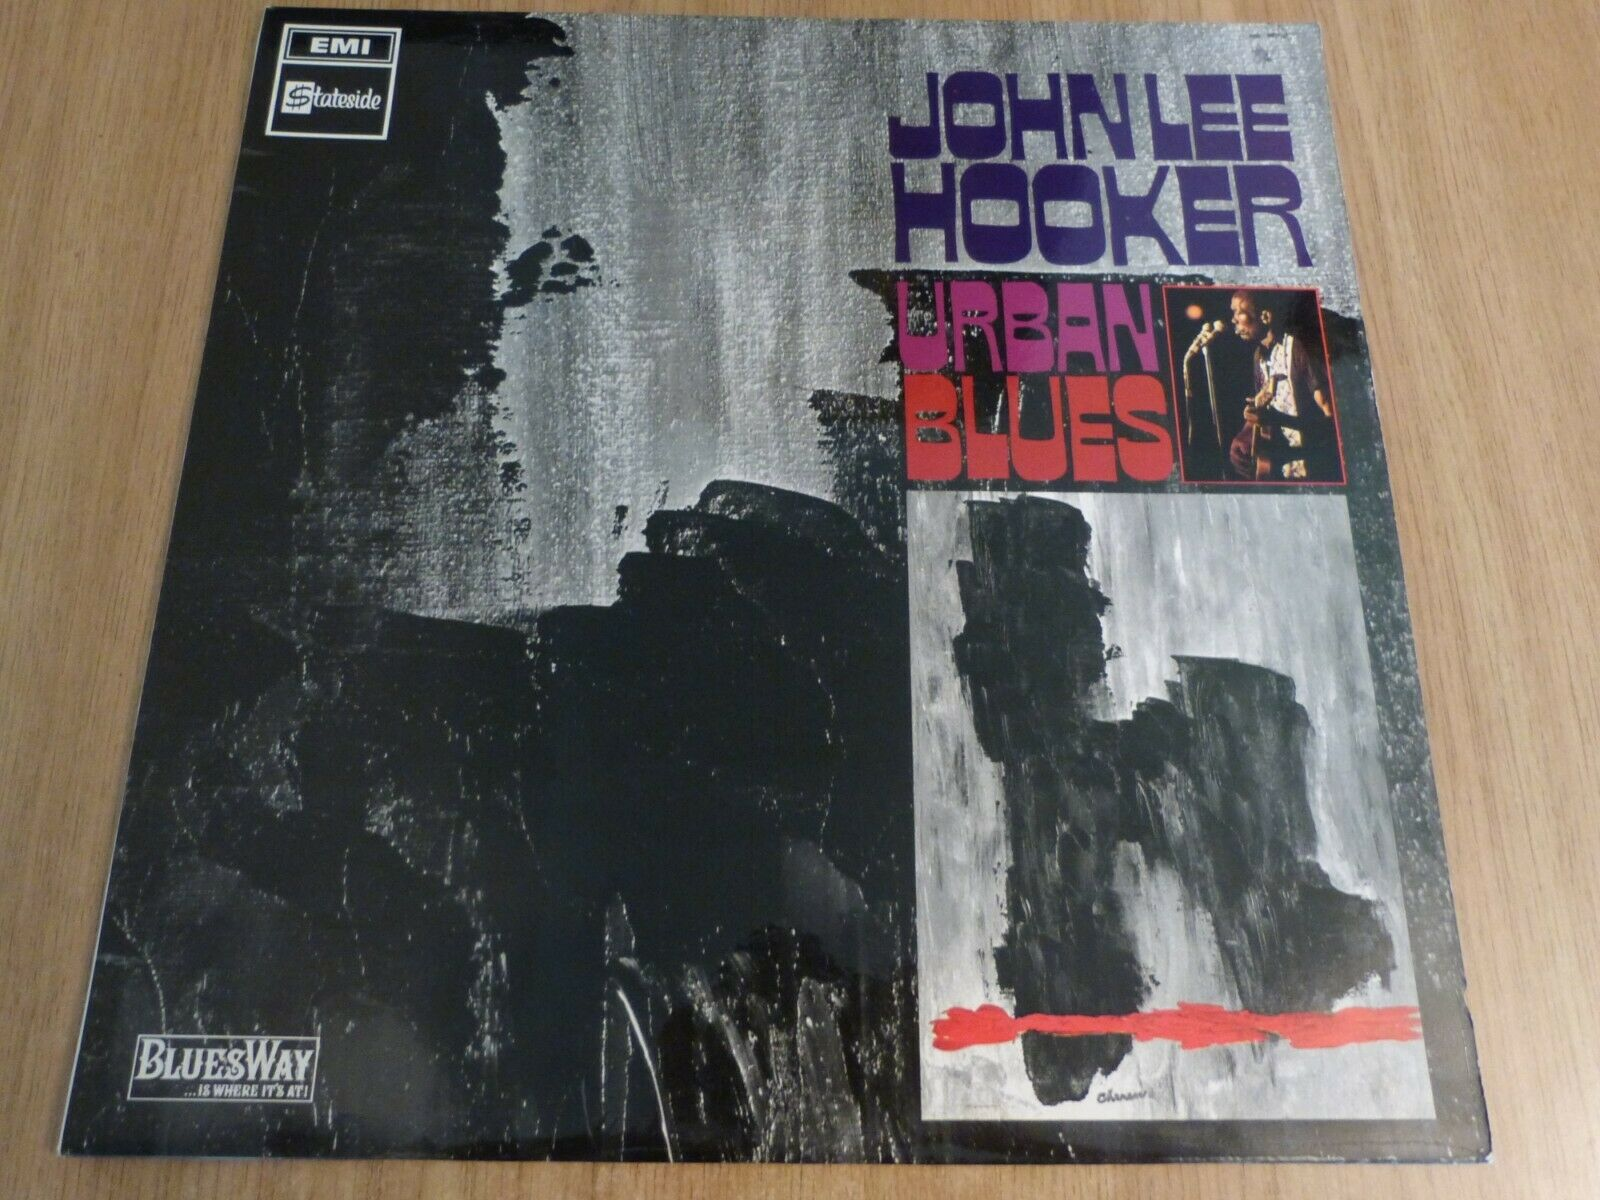 JOHN LEE HOOKER - URBAN BLUES - UK 1ST ISSUE - STATESIDE - -1/-1- EXCELLENT